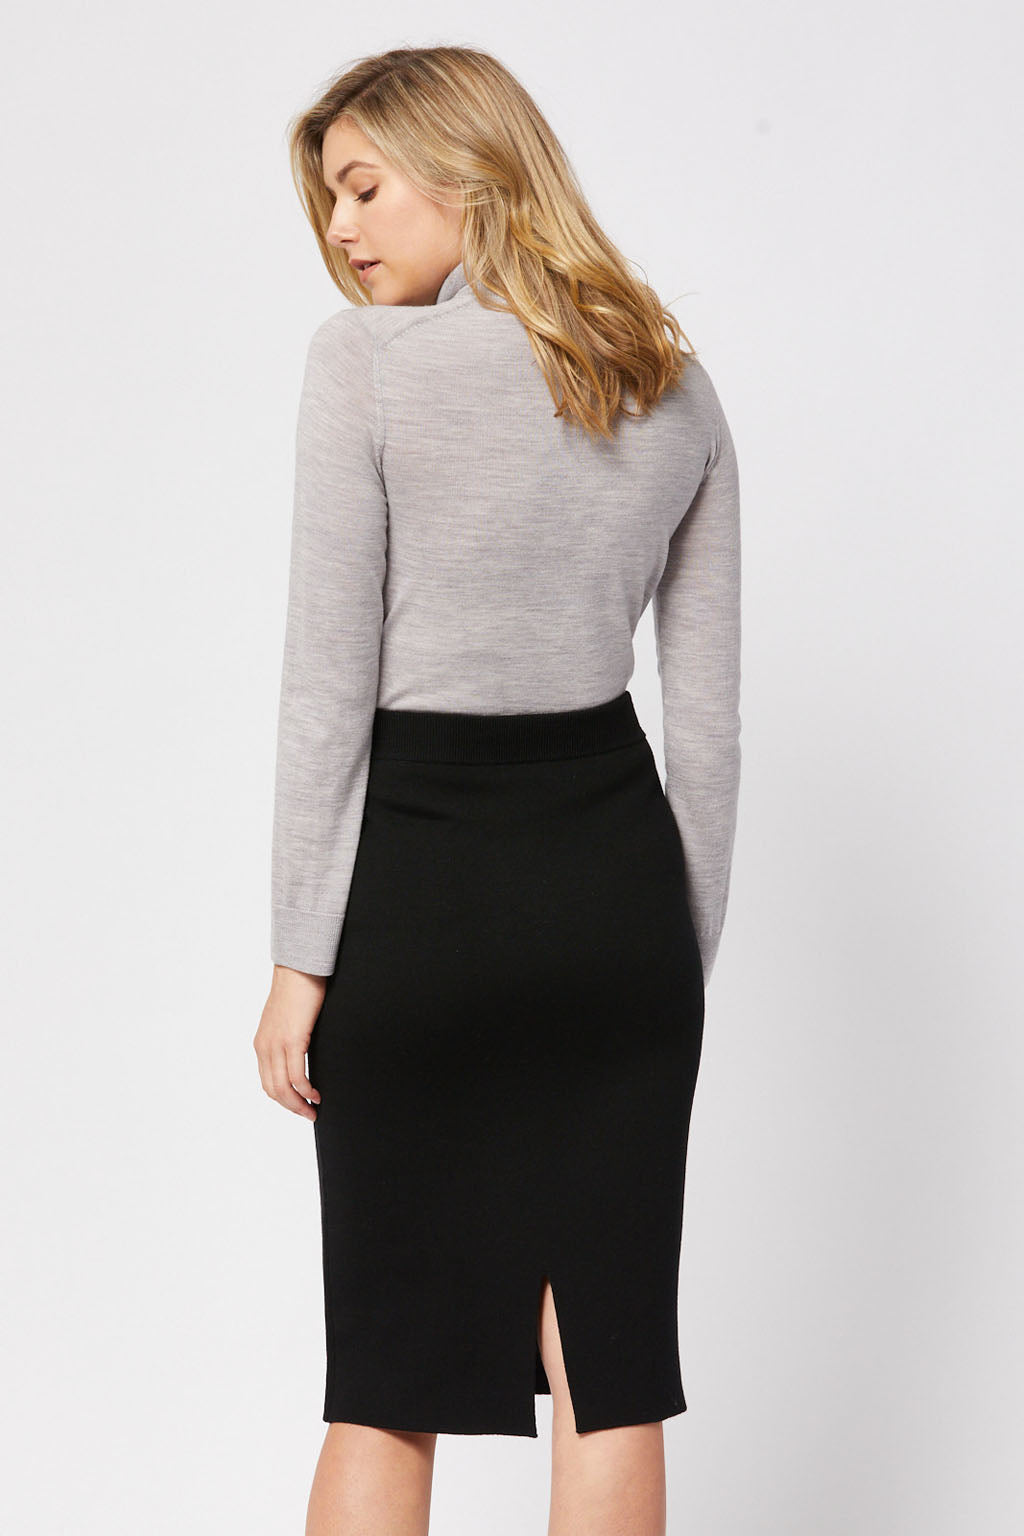 Toorallie Merino Straight Skirt - Black